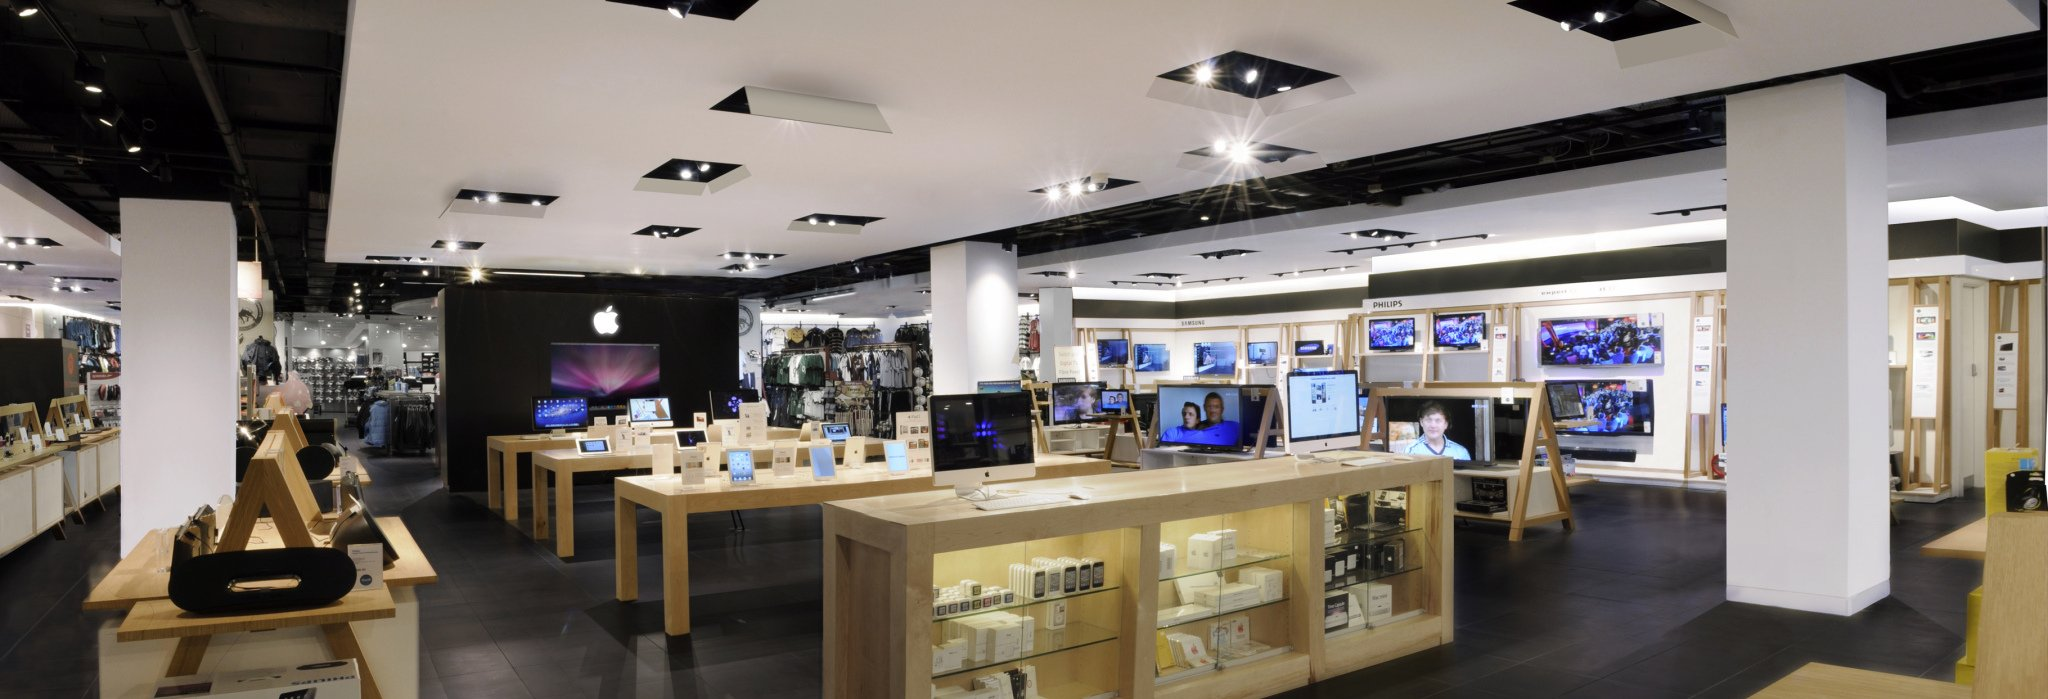 The Retail Lighting Guide Best Practices Solutions Ideas Zen